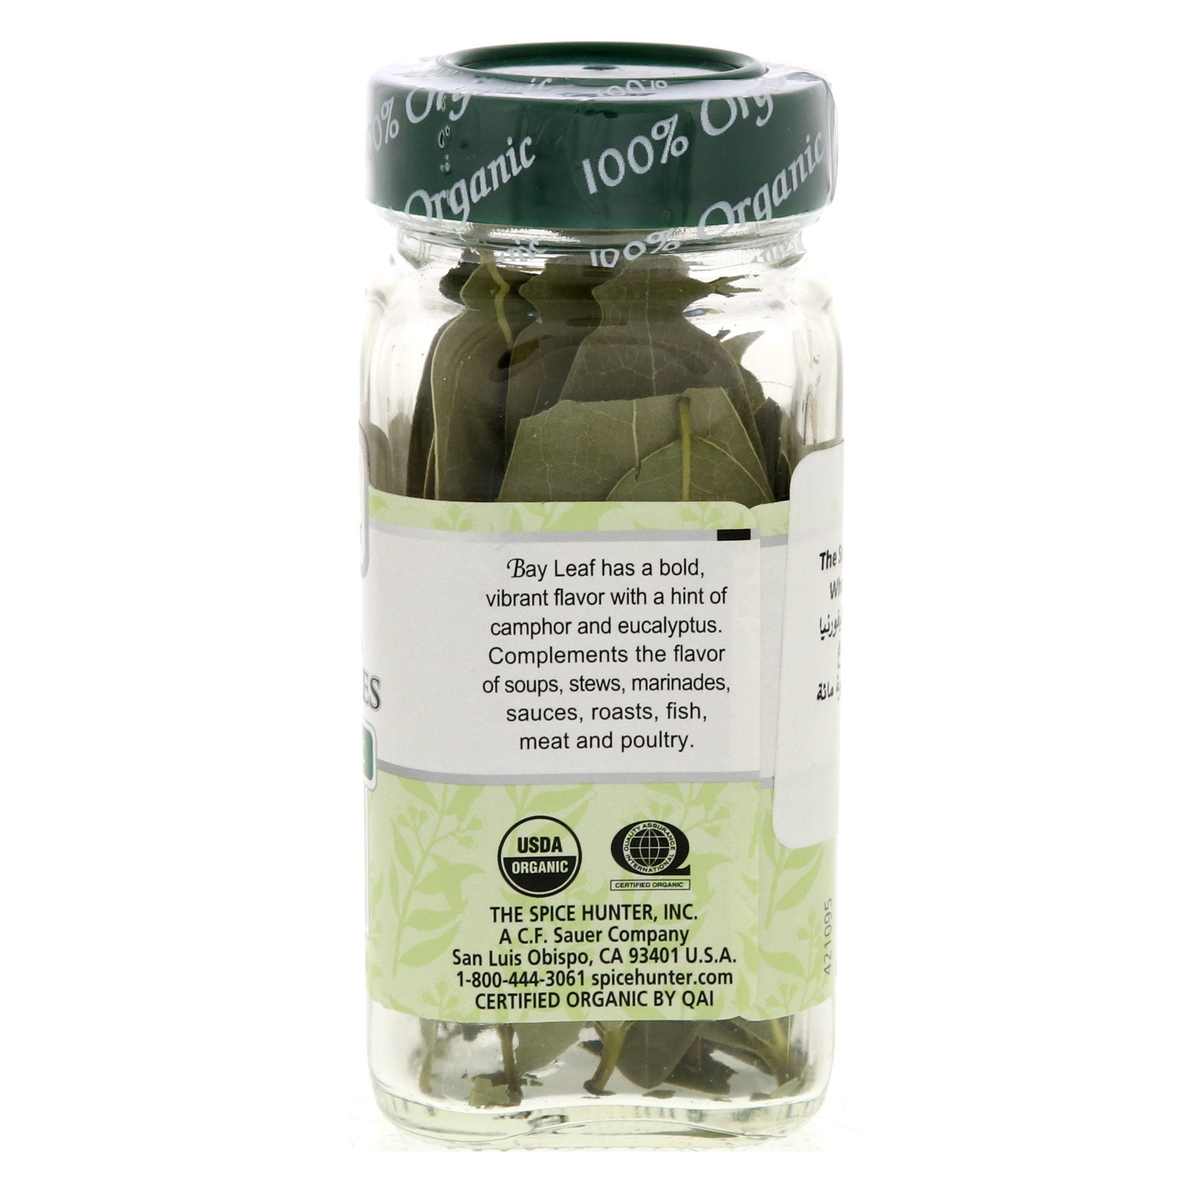 Buy The Spice Hunter California Whole Bay Leaves 4g - Herbs